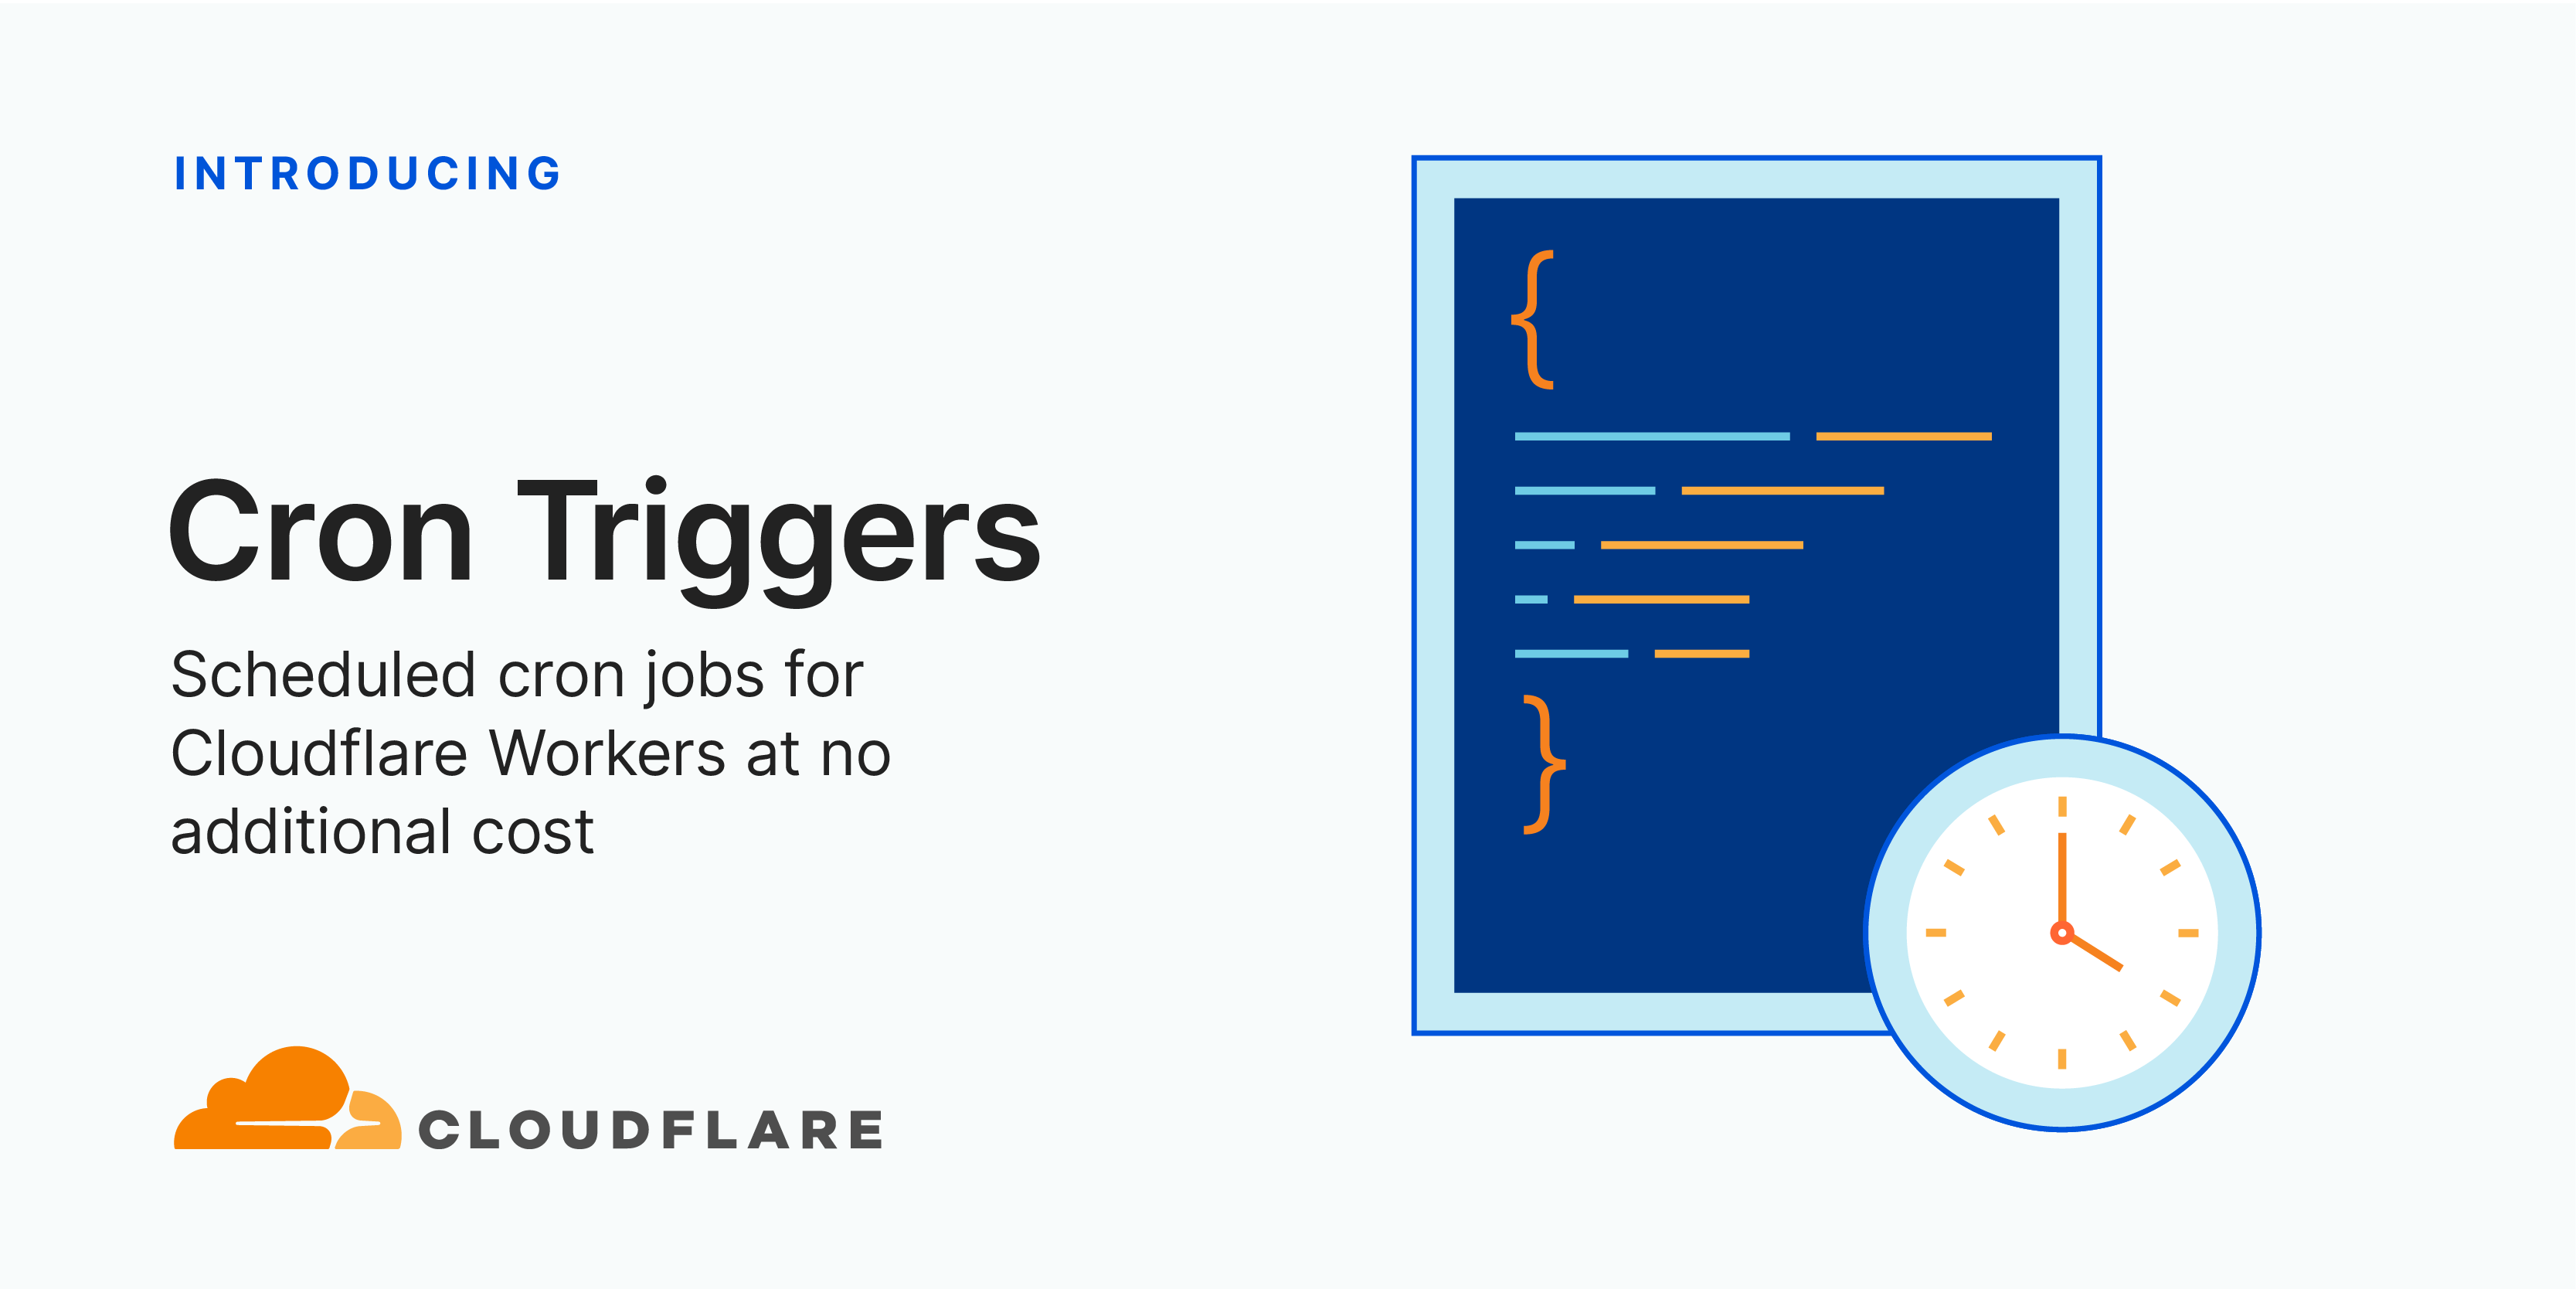 Introducing Cron Triggers for Cloudflare Workers